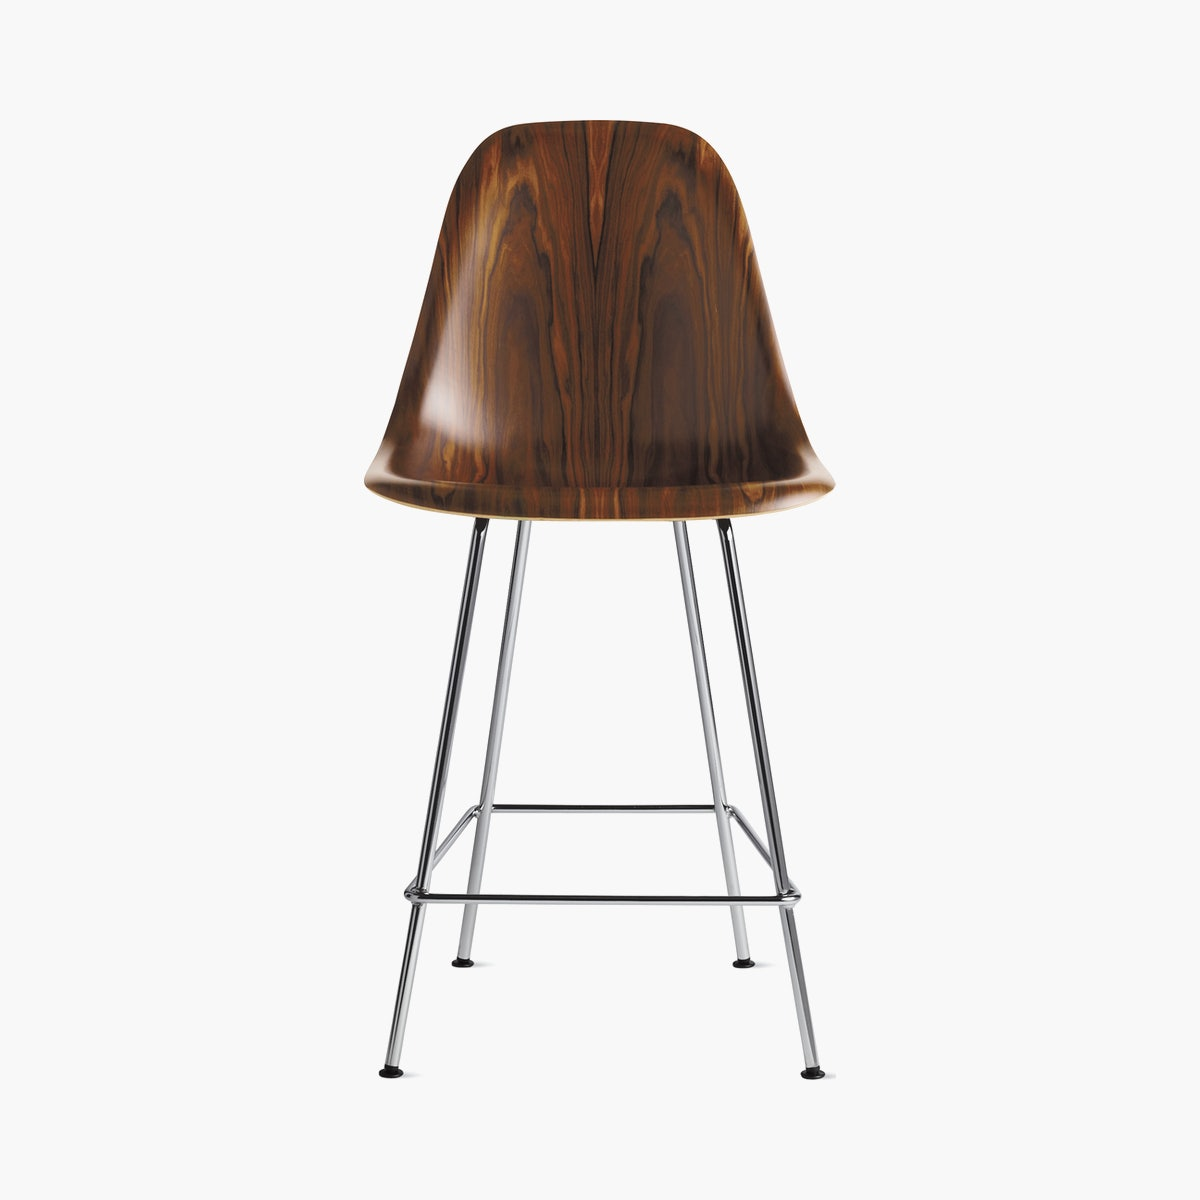 Eames Molded Plywood Stool